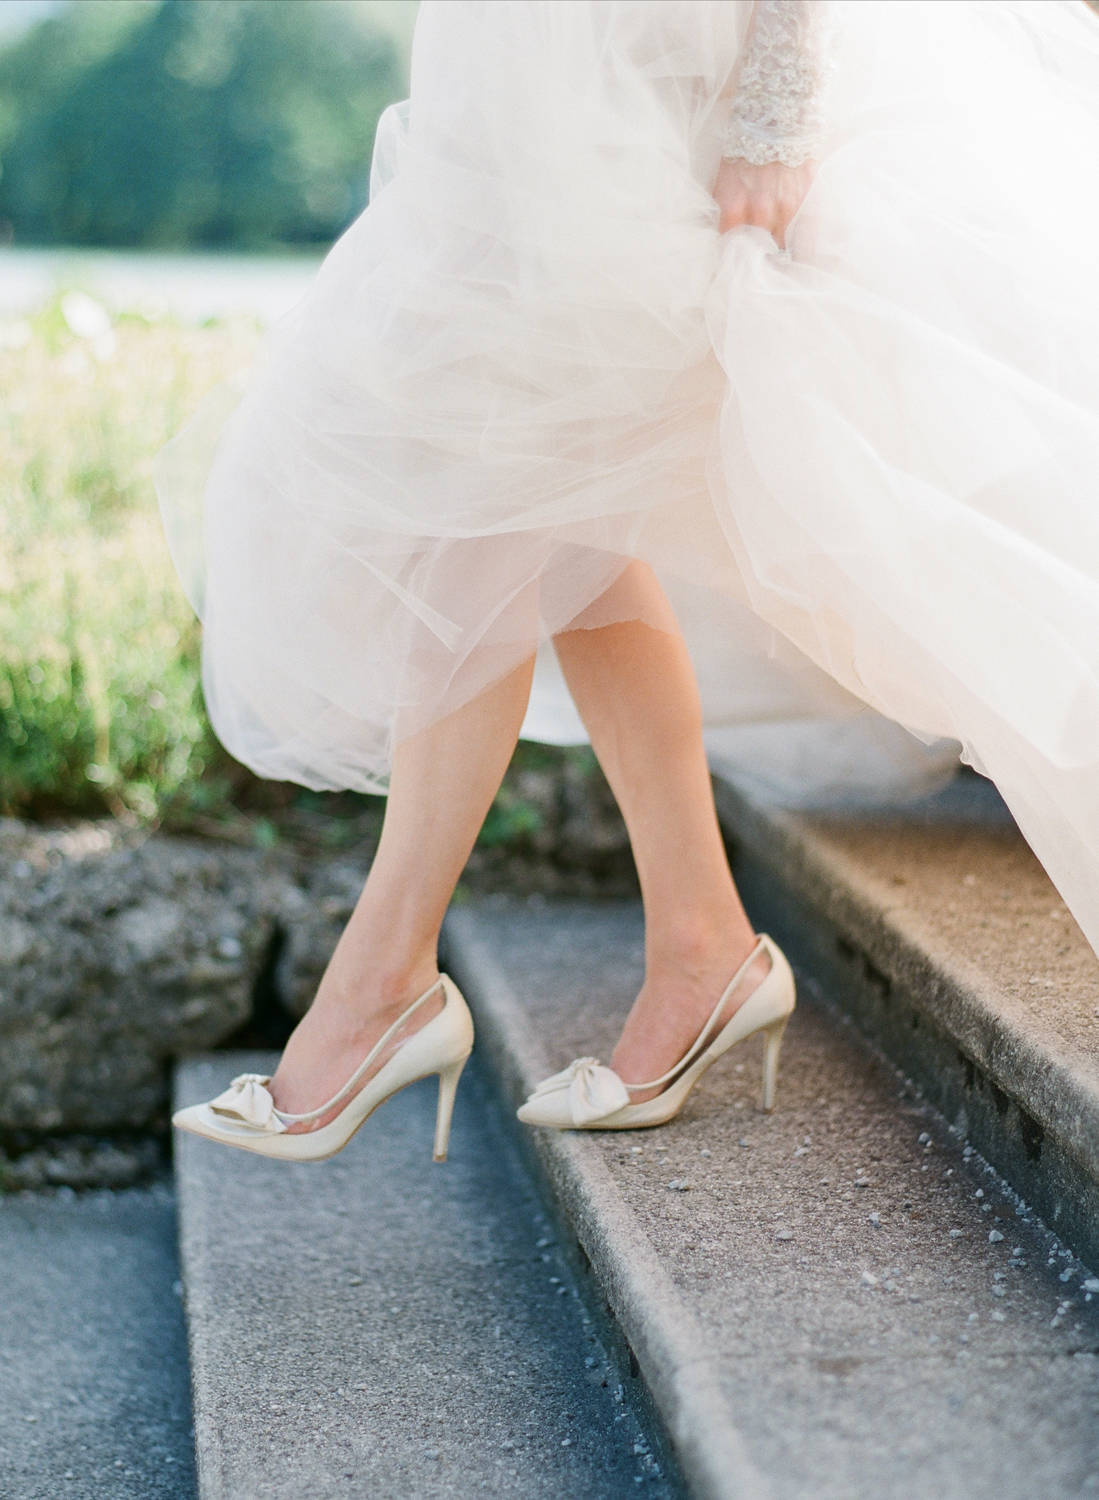 lake_como_wedding_photographer_nikol_bodnarova_194.JPG